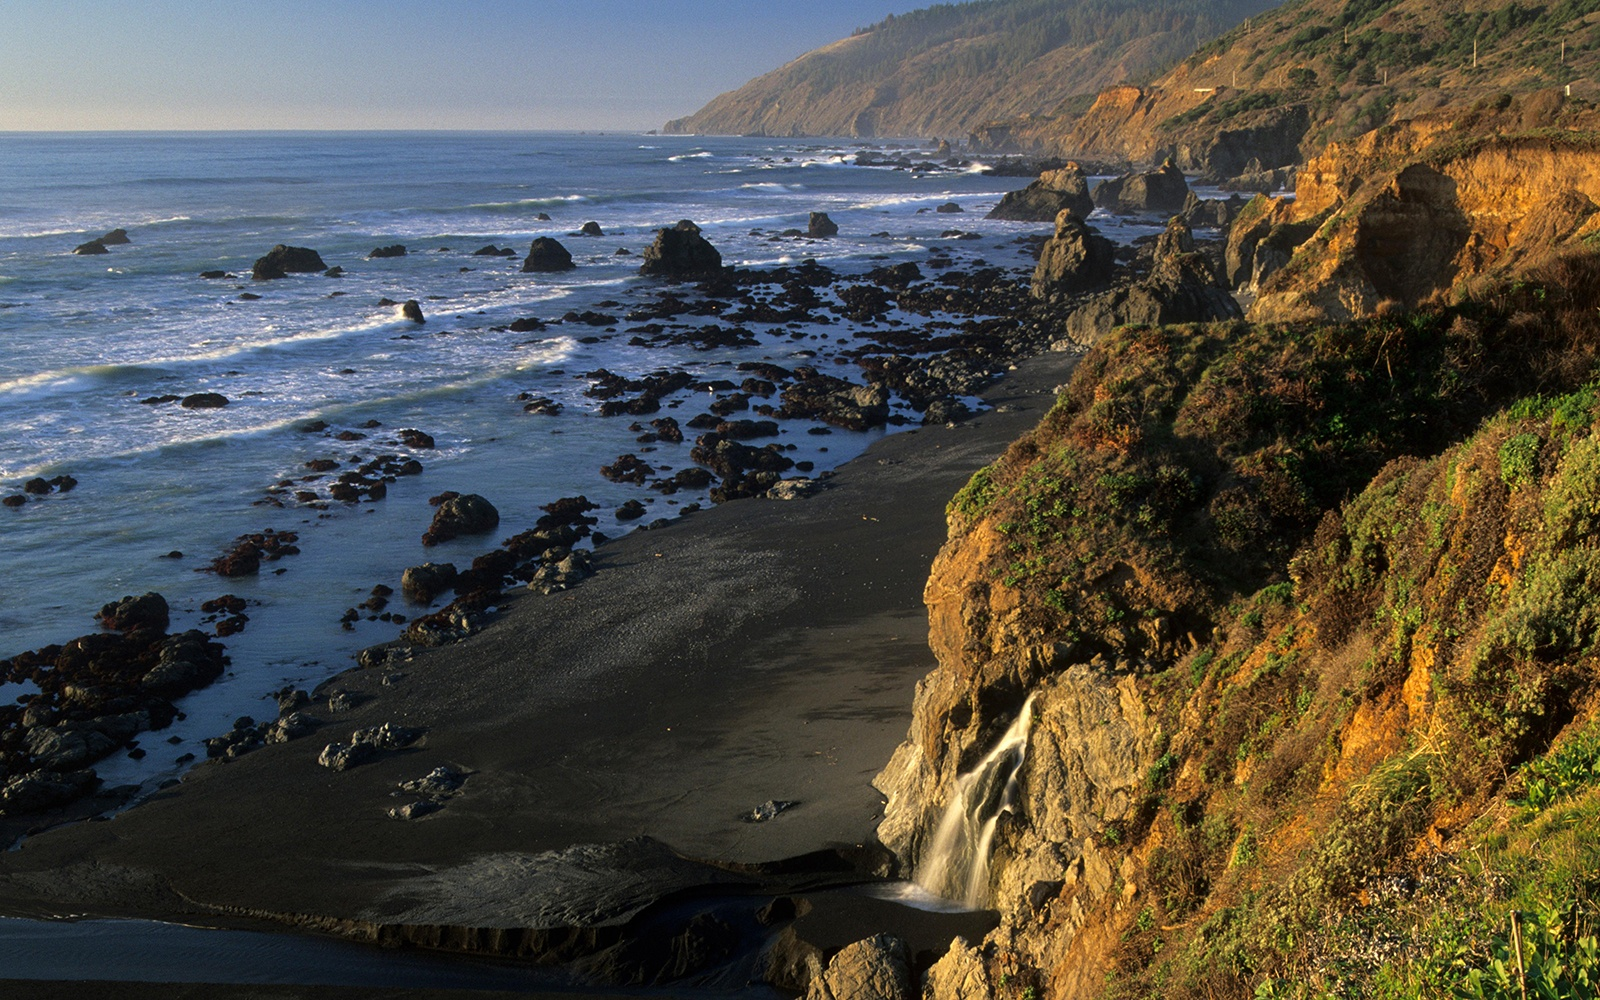 Westport-Union Landing State Beach, California